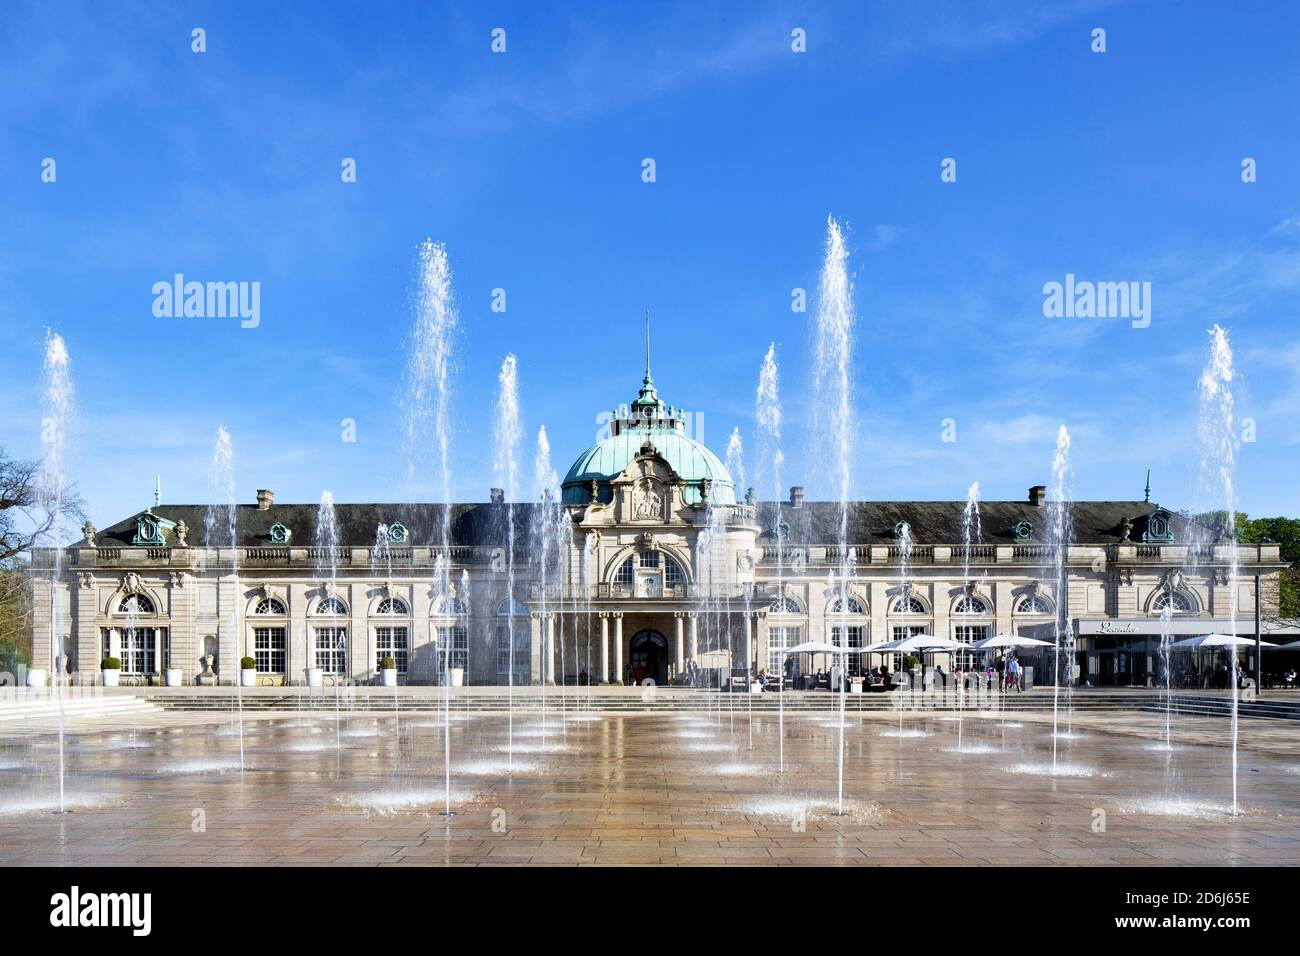 Kaiserpalais, built in 1908 as New spa hotel with reading room, lounges, restaurant, billiard room, concert hall, spa gardens, Bad Oeynhausen, East Stock Photo